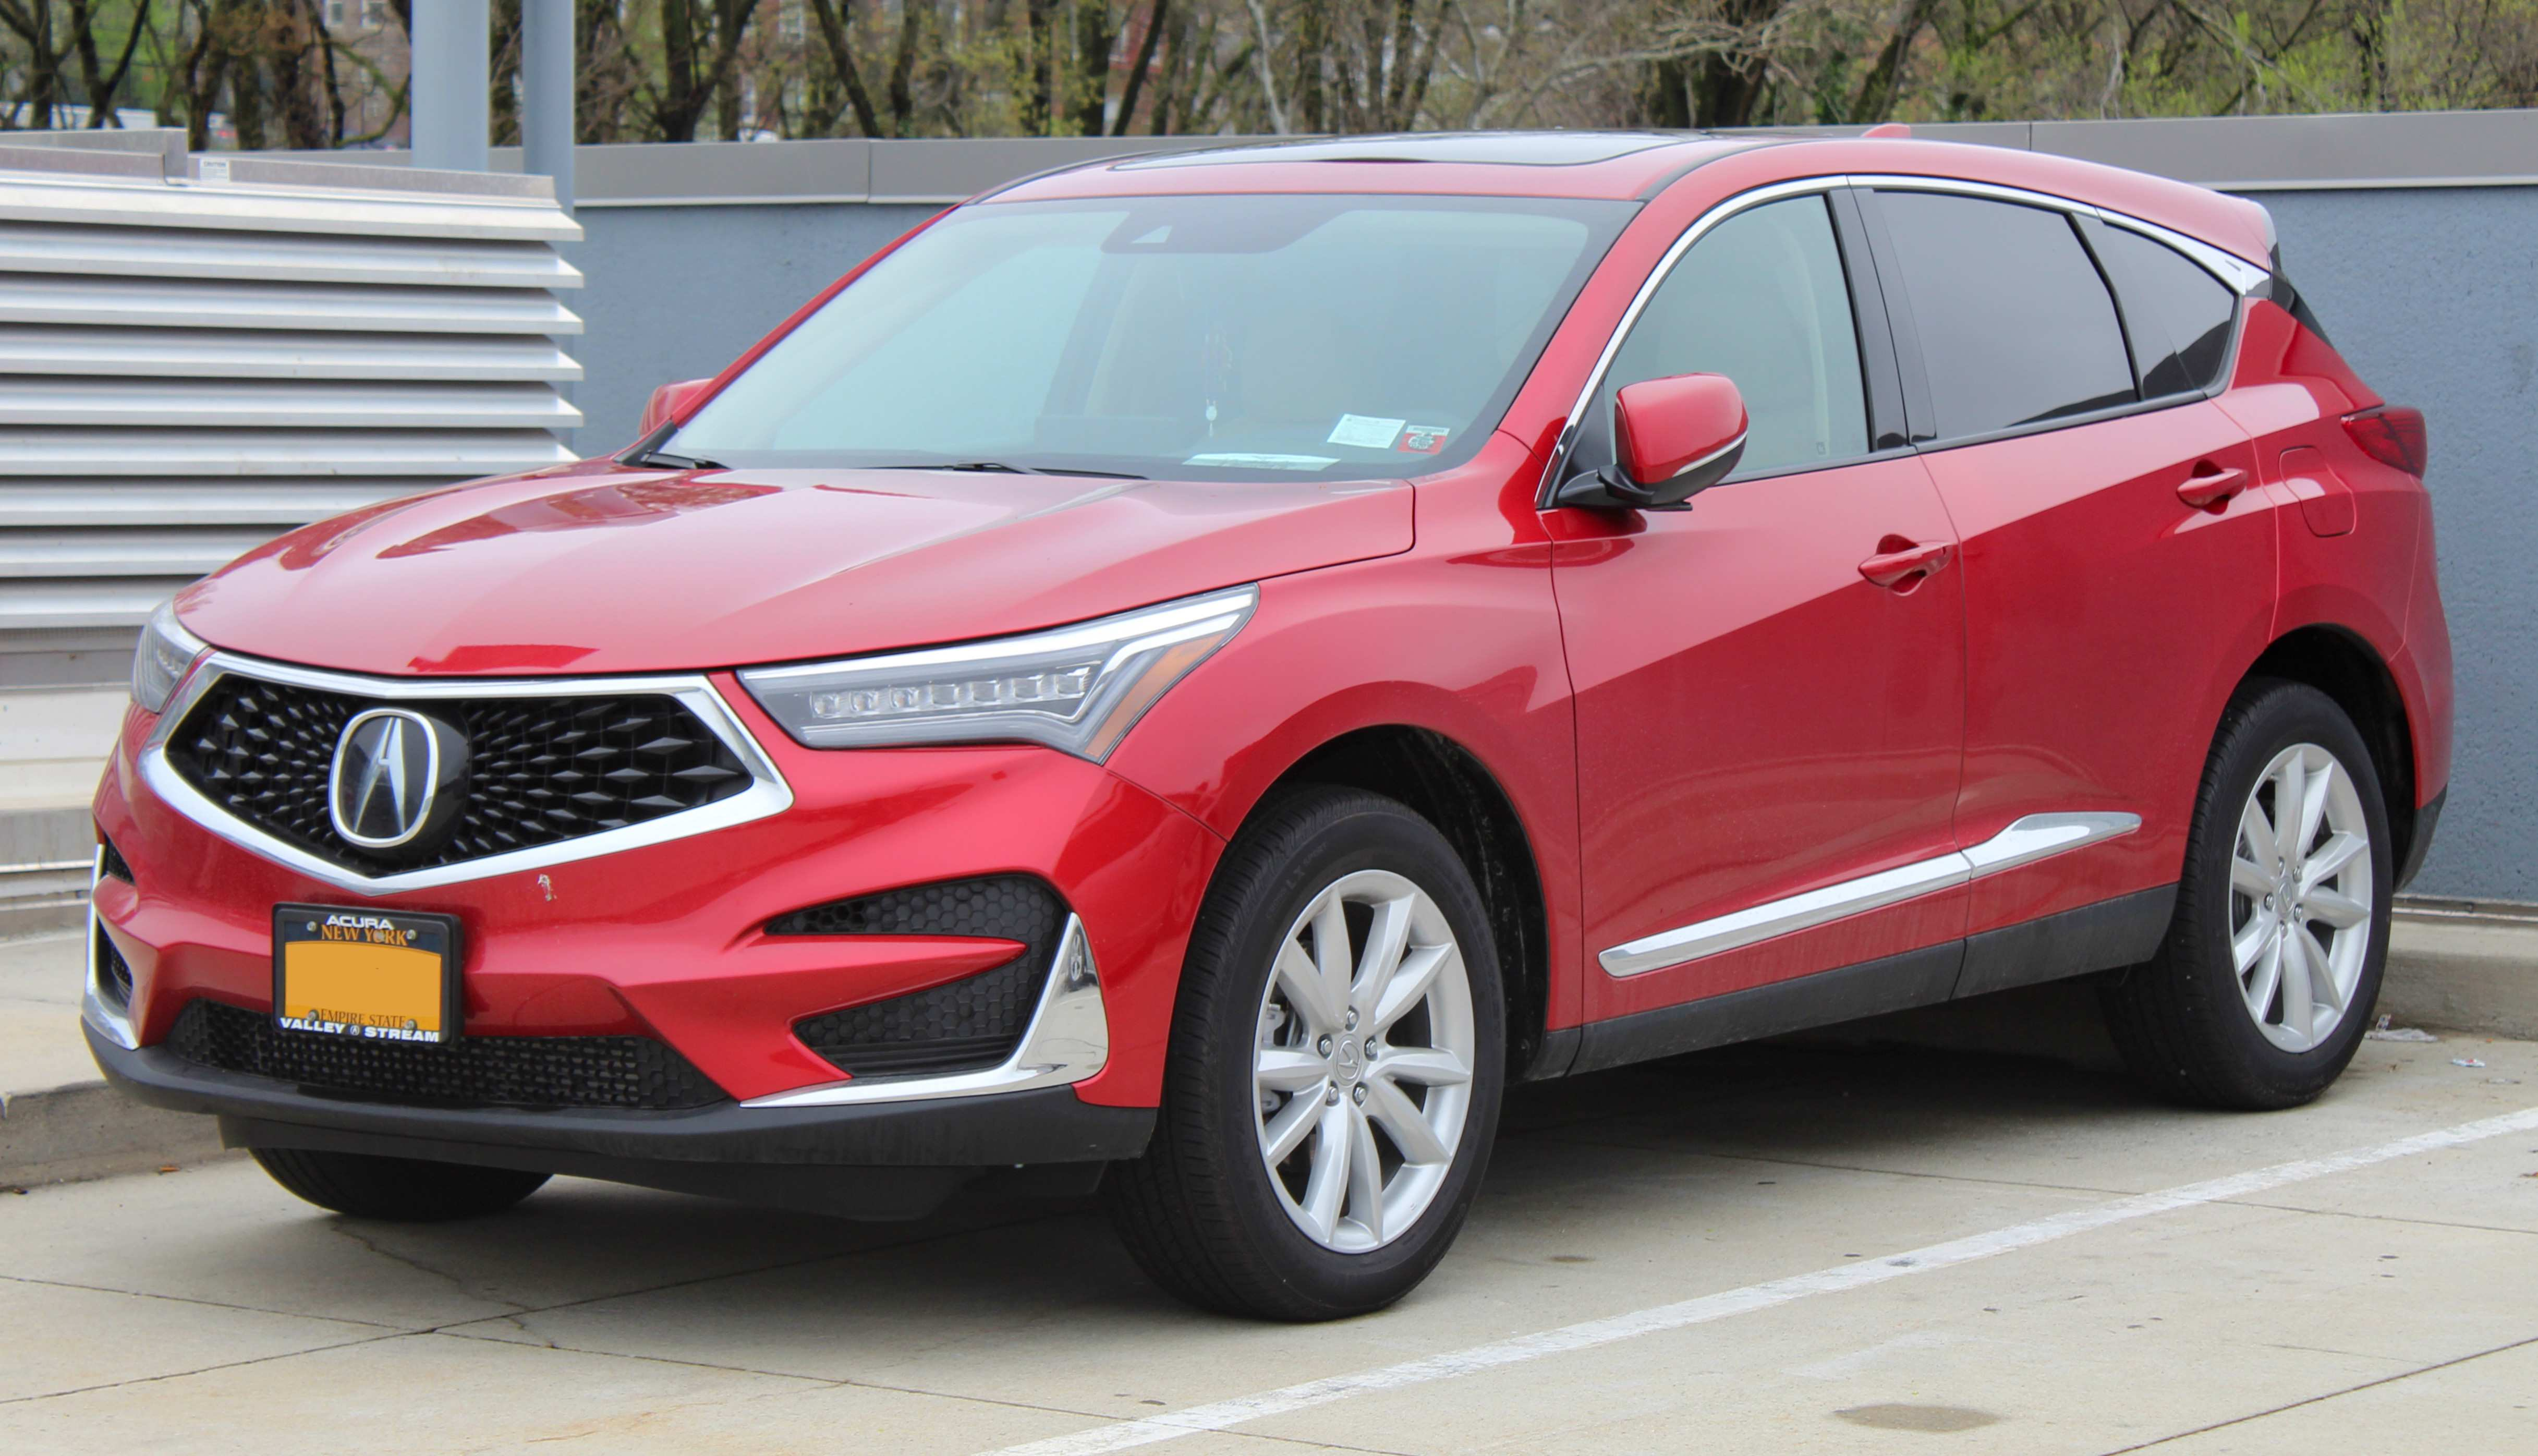 15 New The Acura New Models 2019 Interior Exterior And Review Prices with The Acura New Models 2019 Interior Exterior And Review